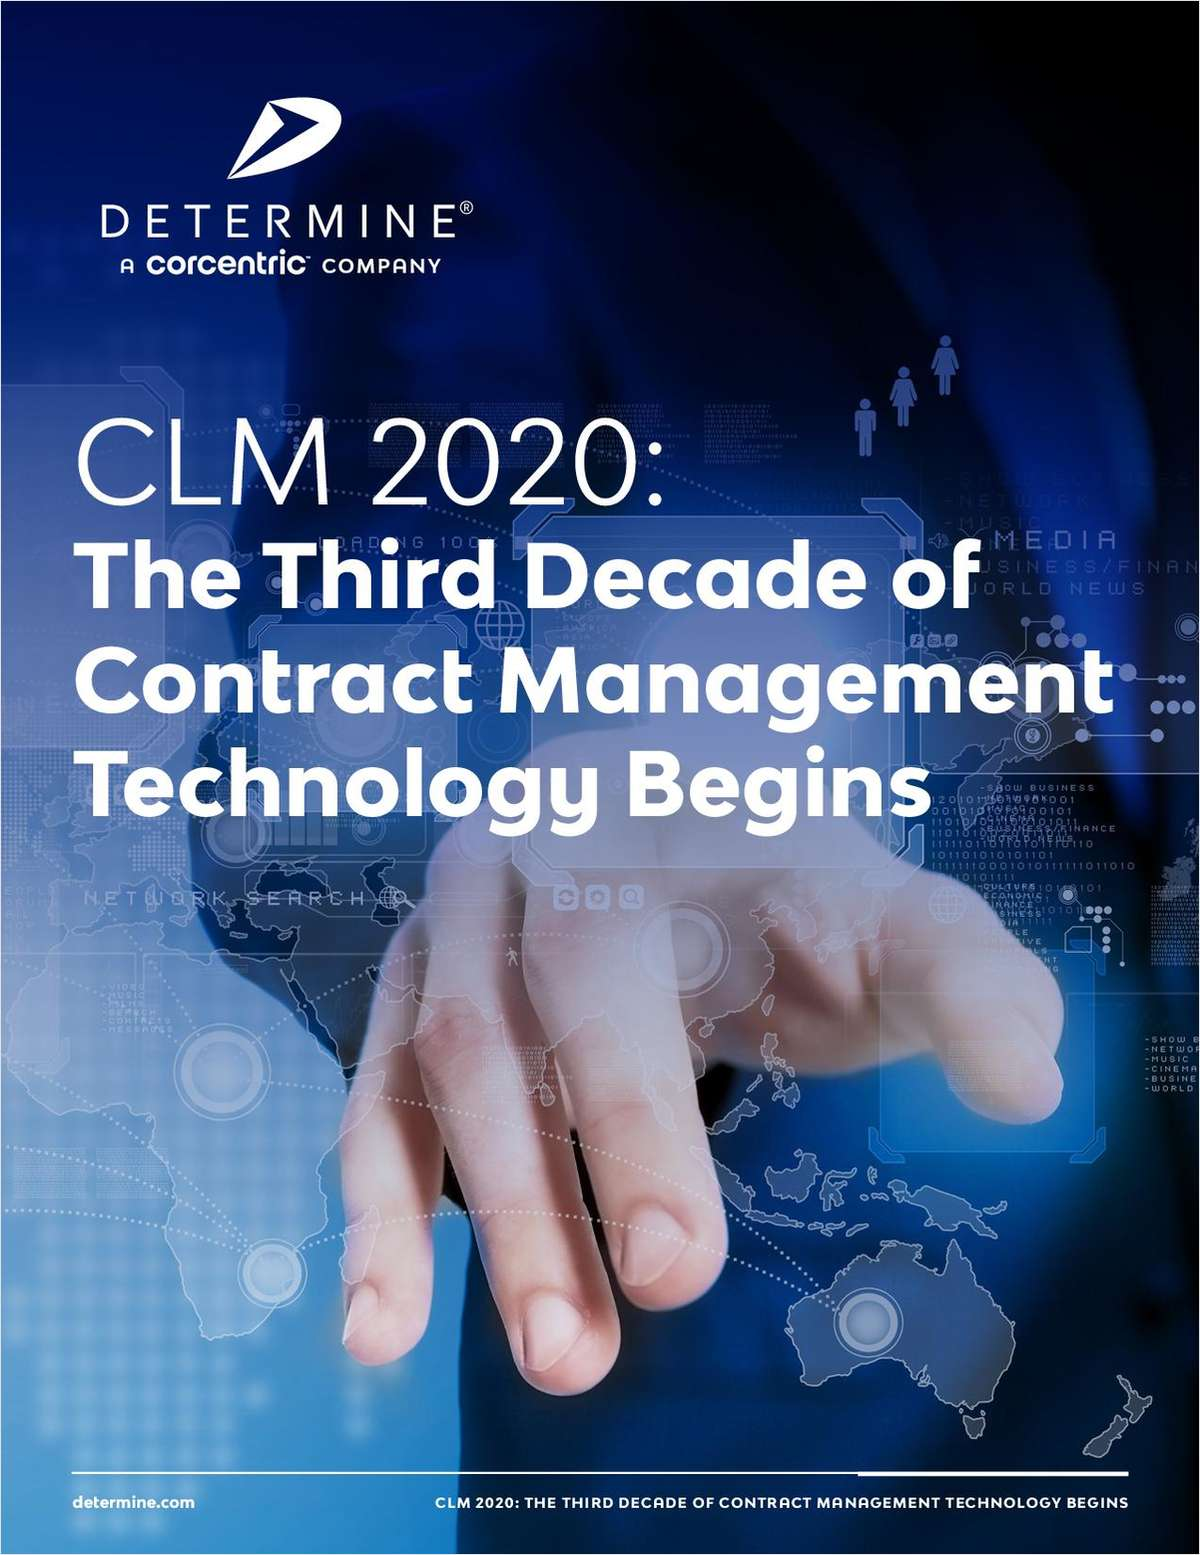 CLM 2020: The Third Decade of Contract Management Technology Begins